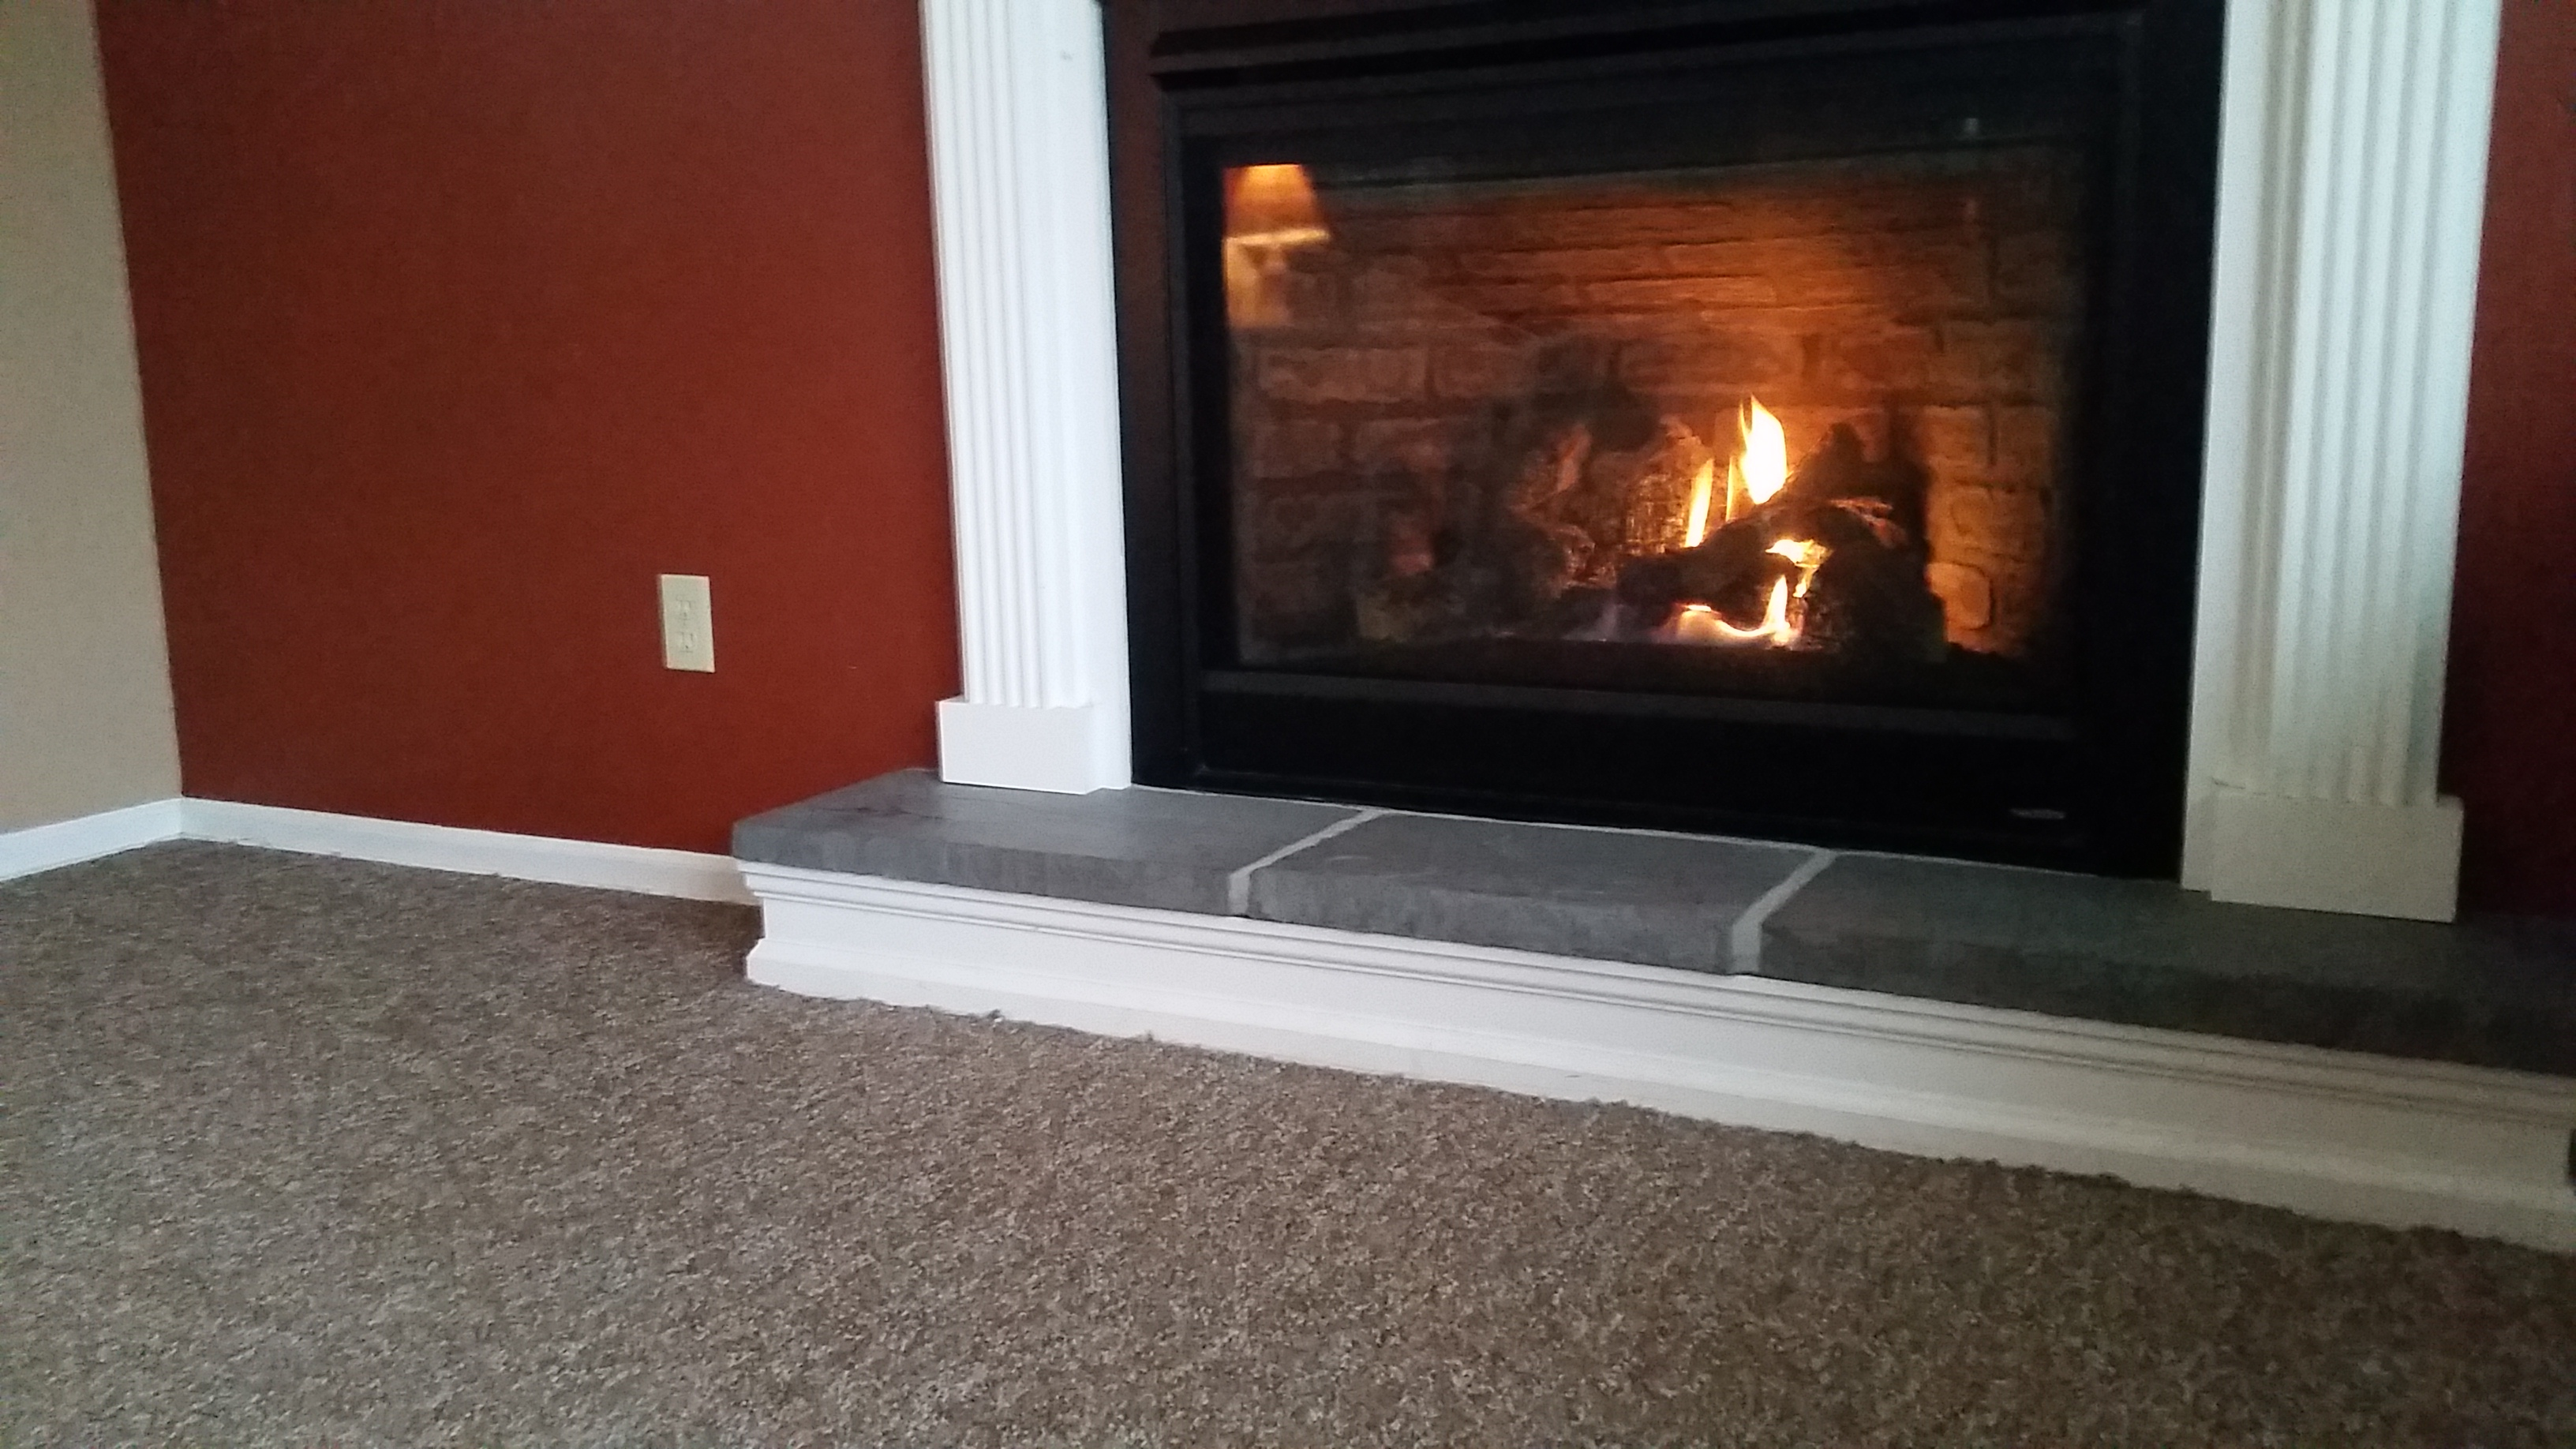 The Best Carpet Cleaning Service in Mays Landing NJ